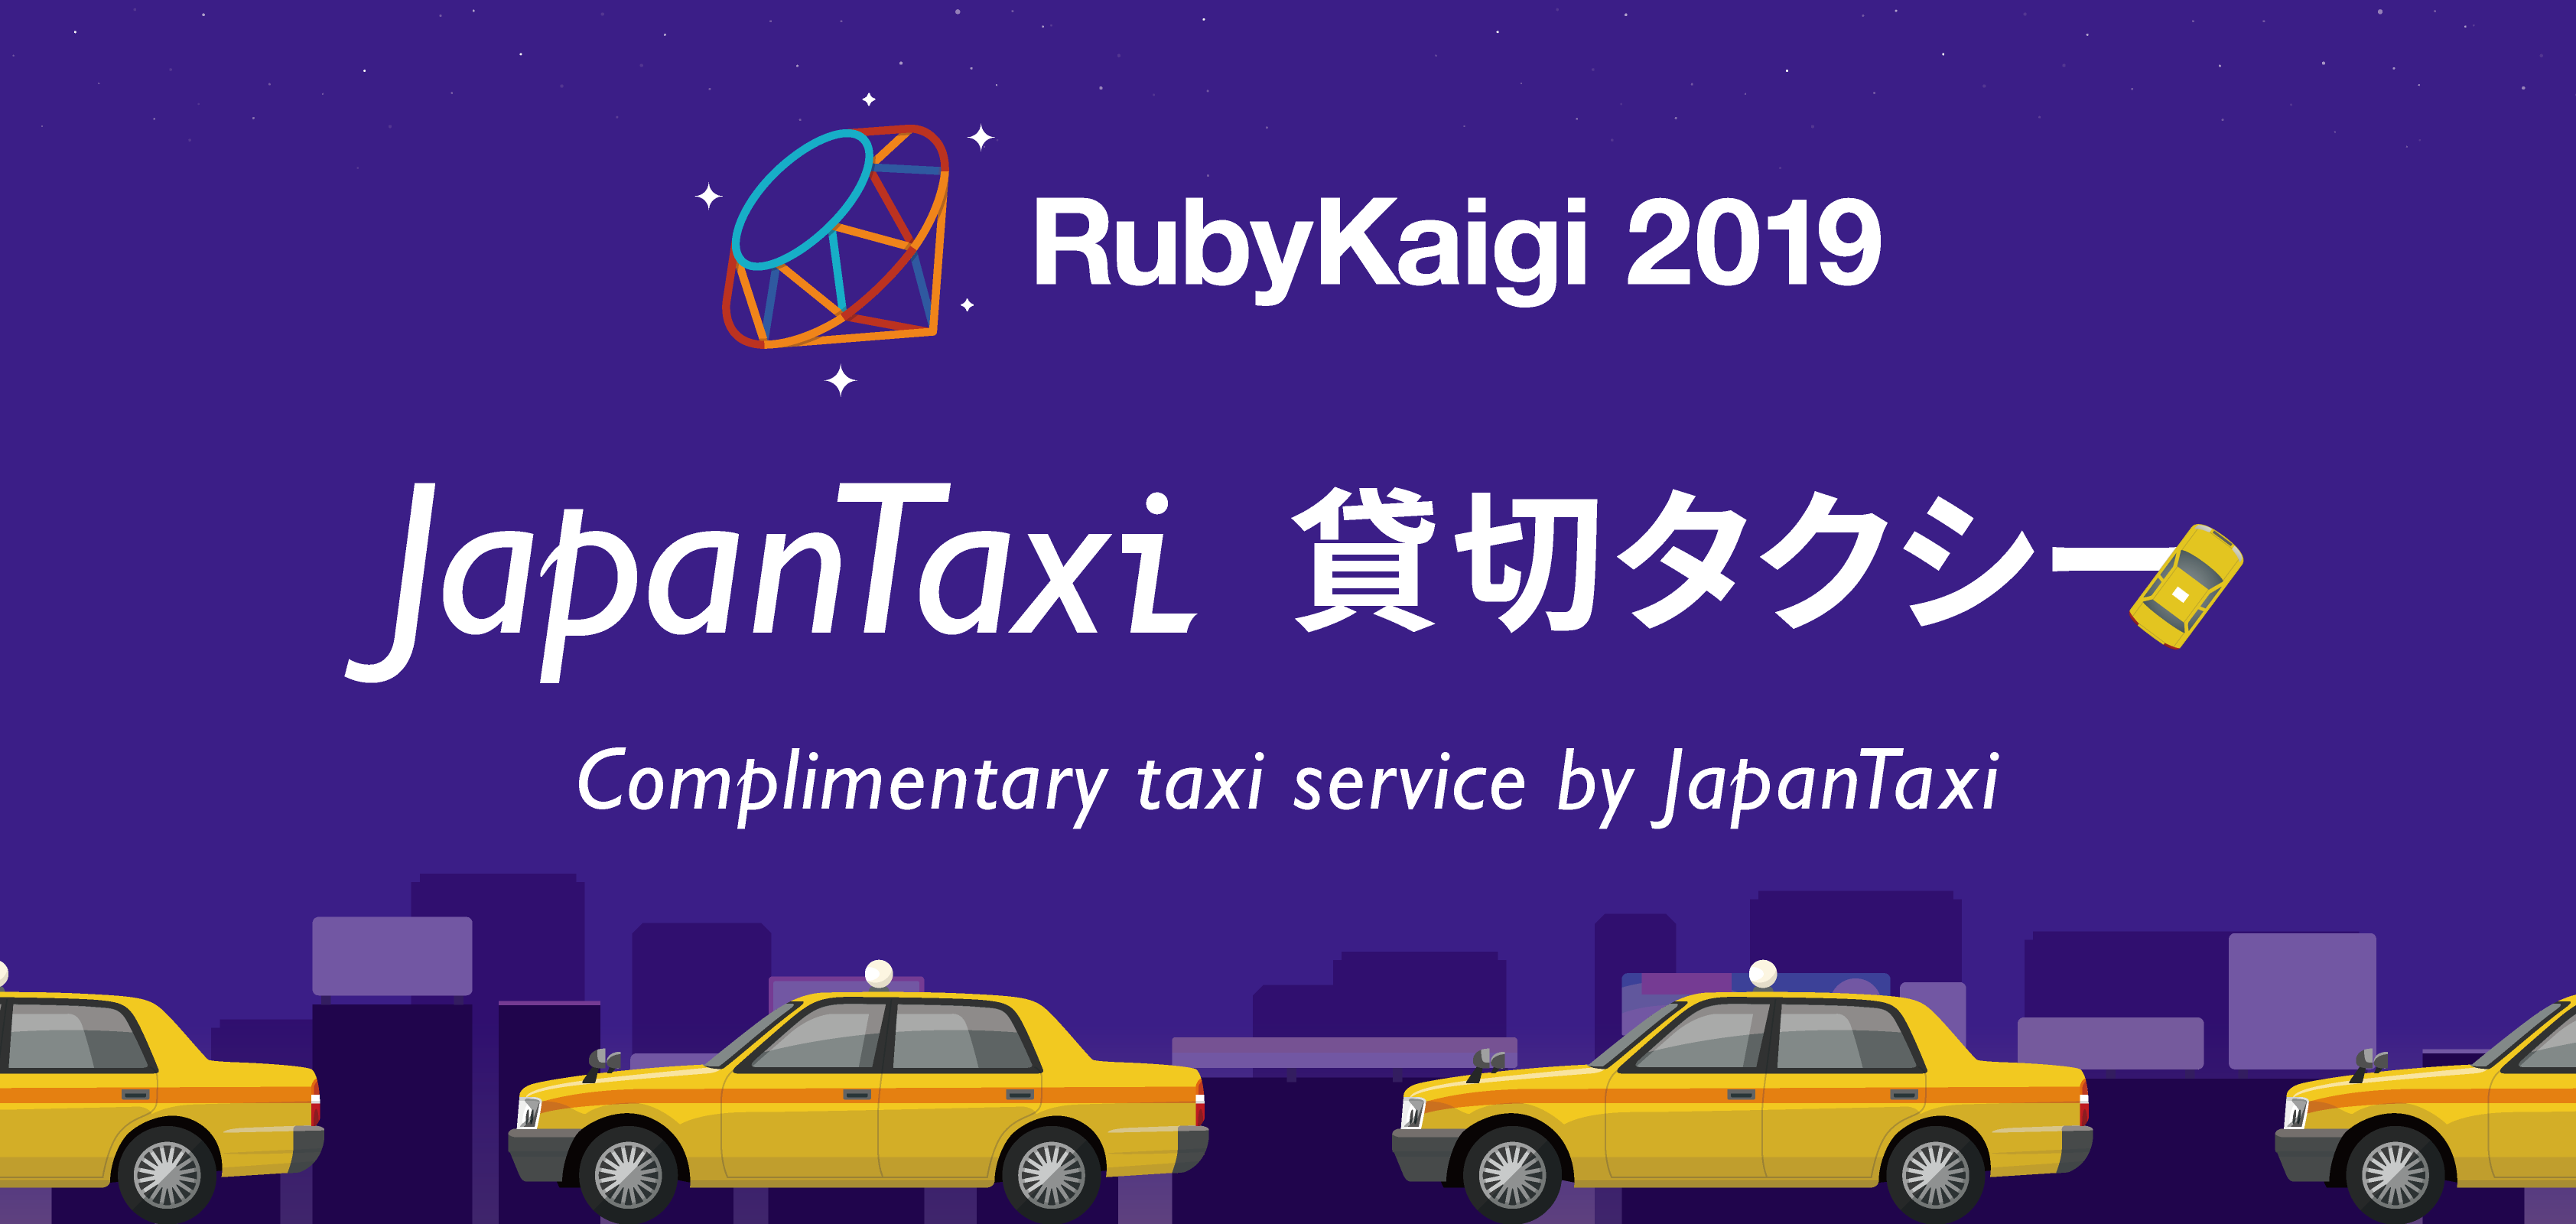 Complimentary Taxi Service by JapanTaxi